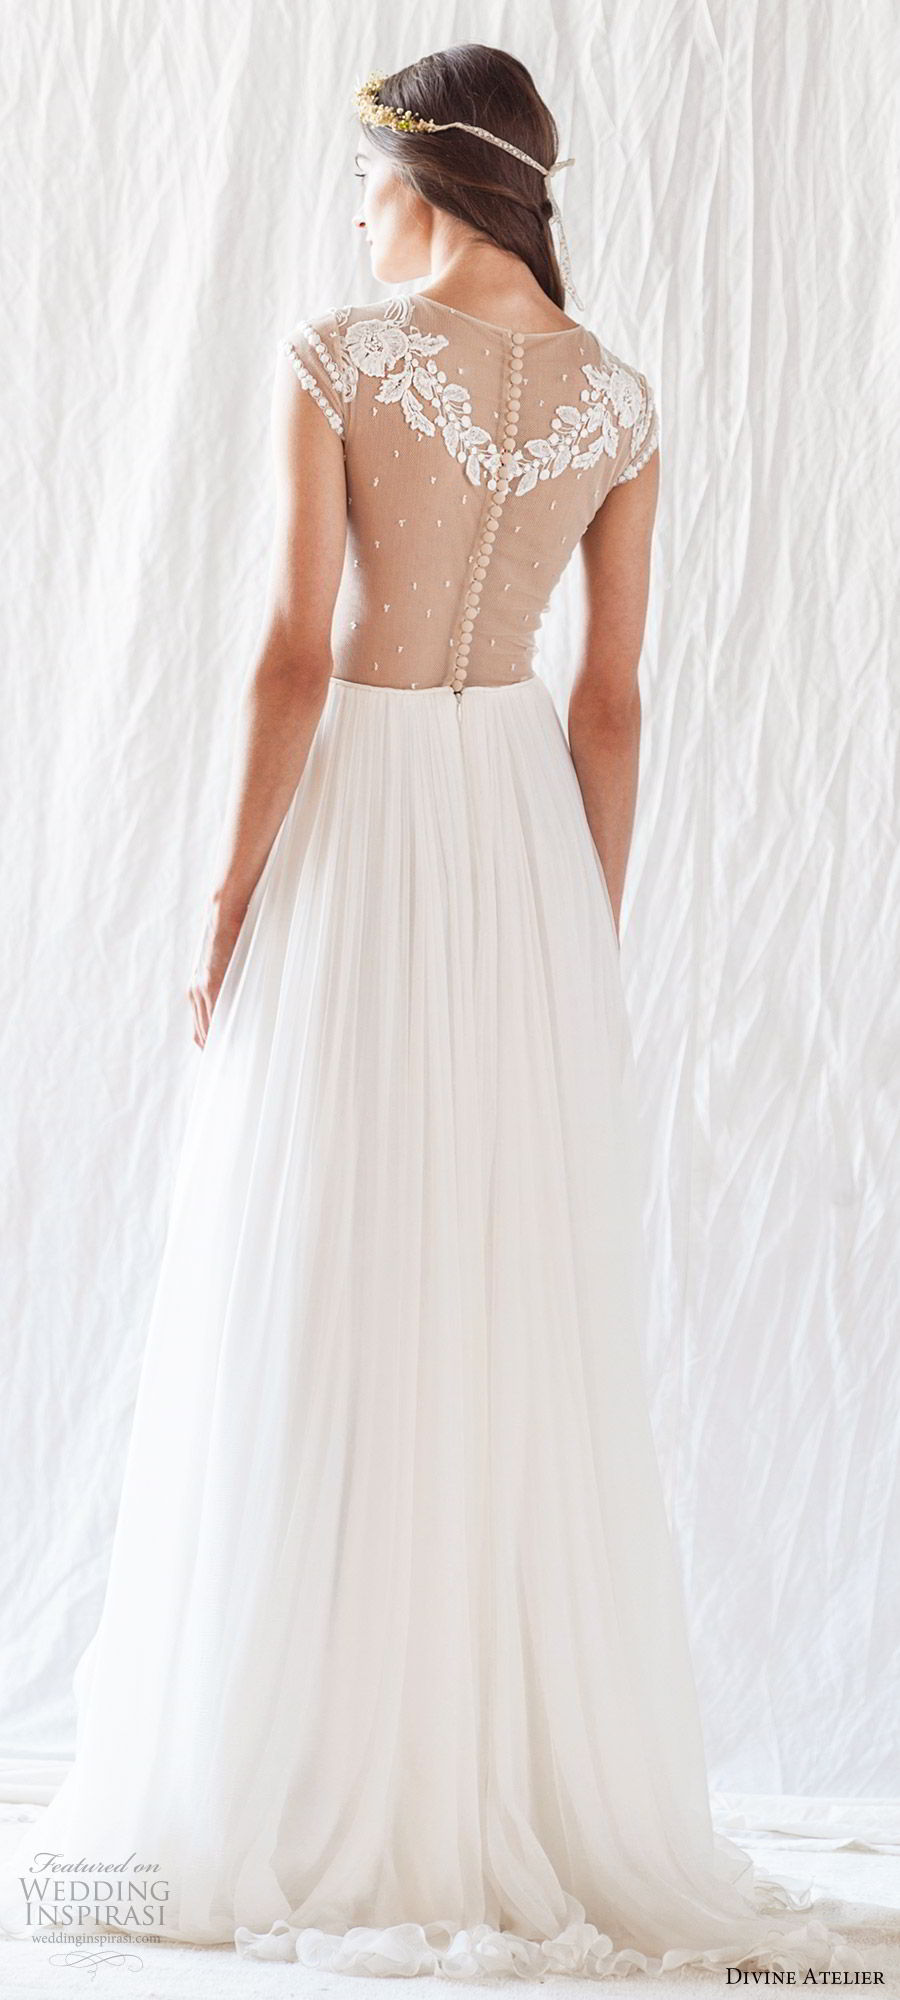 divine atelier 2019 bridal illusion cap sleeves jewel neck embroidered bodice soft a line wedding dress (15) sheer back sweep train romantic whimsical bv